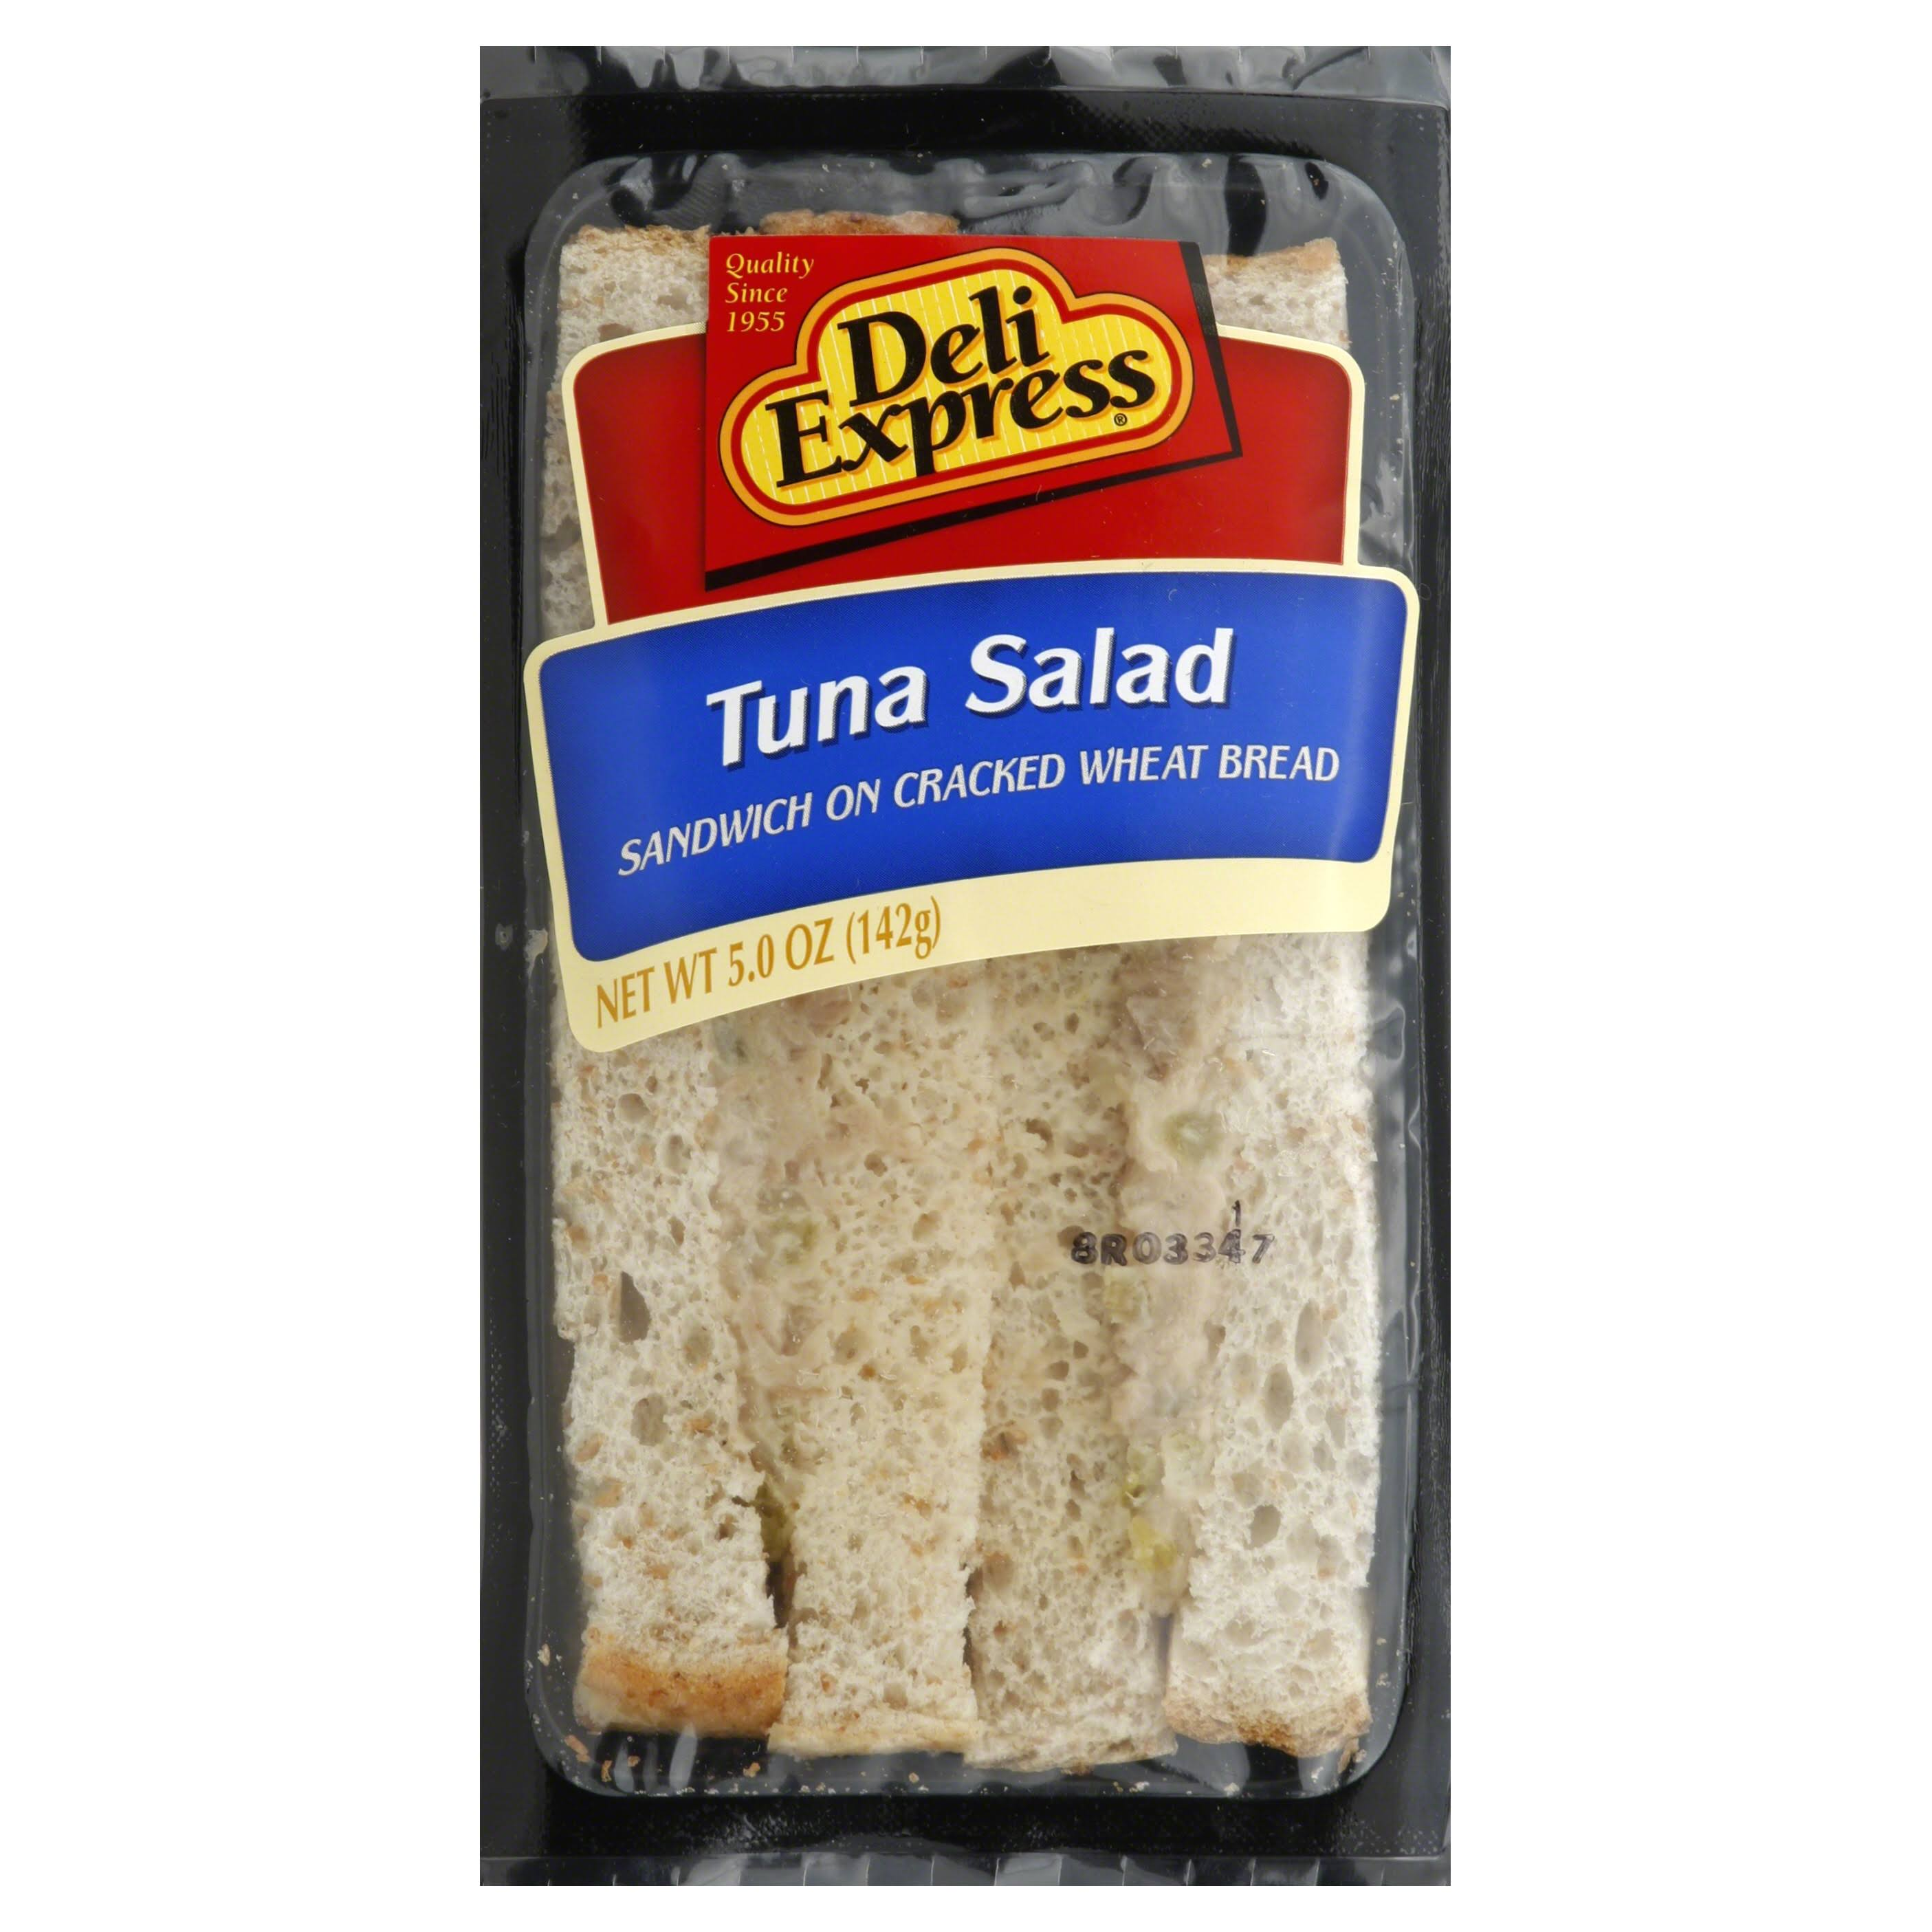 Deli Express Sandwich, Tuna Salad - 5.0 oz